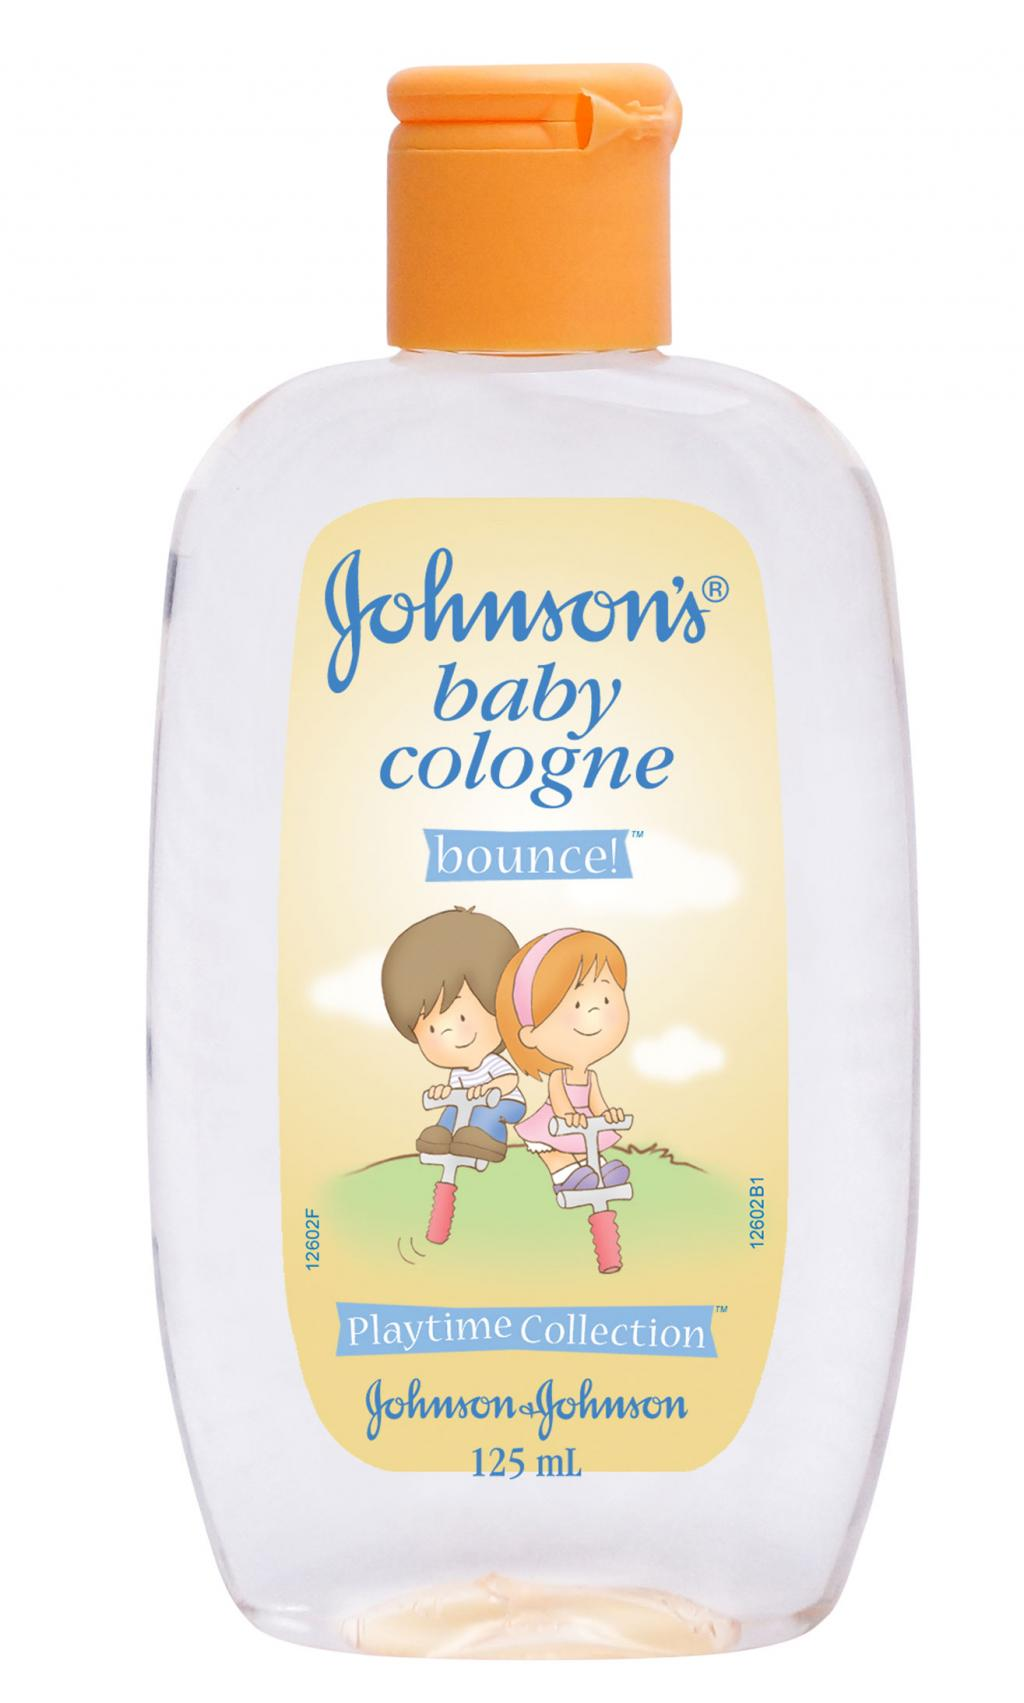 JOHNSON'S® baby cologne bounce